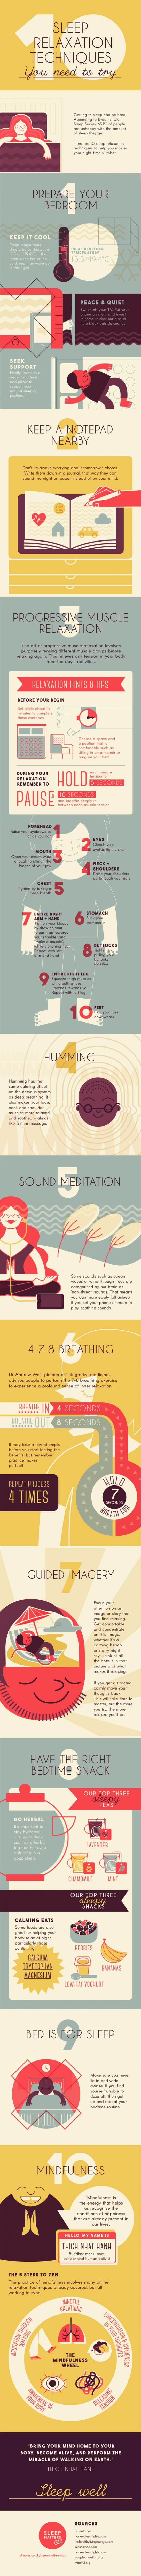 image with 10 techniques to improve sleep health